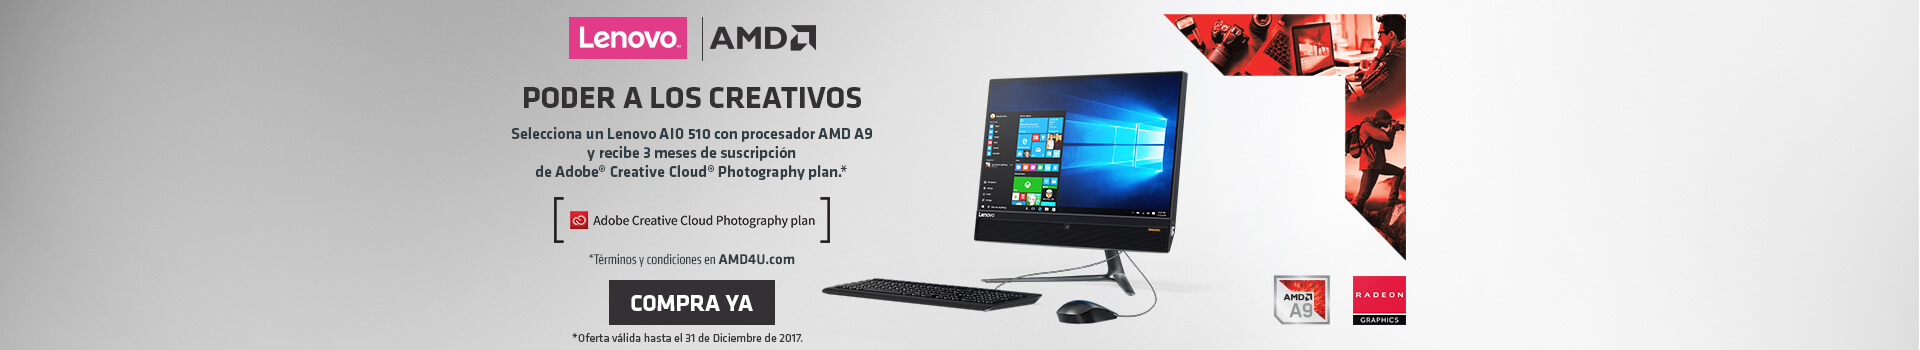 EXP AMD KT- CAT-6-computadores-PC All in One LENOVO 510 AMD A9 21.5